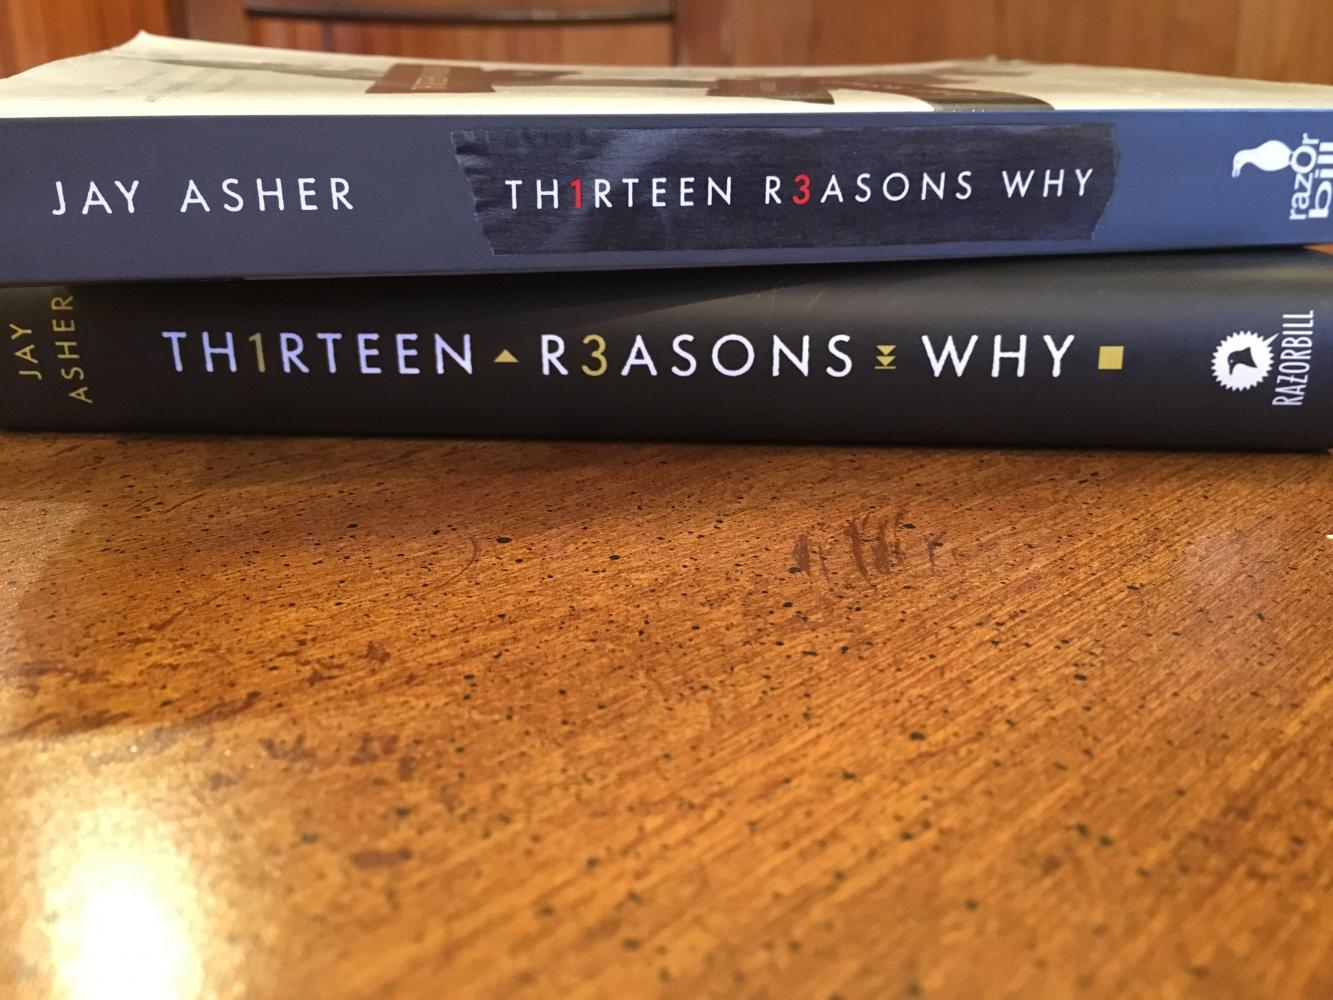 13 Reasons Why: The best-selling novel turns 10